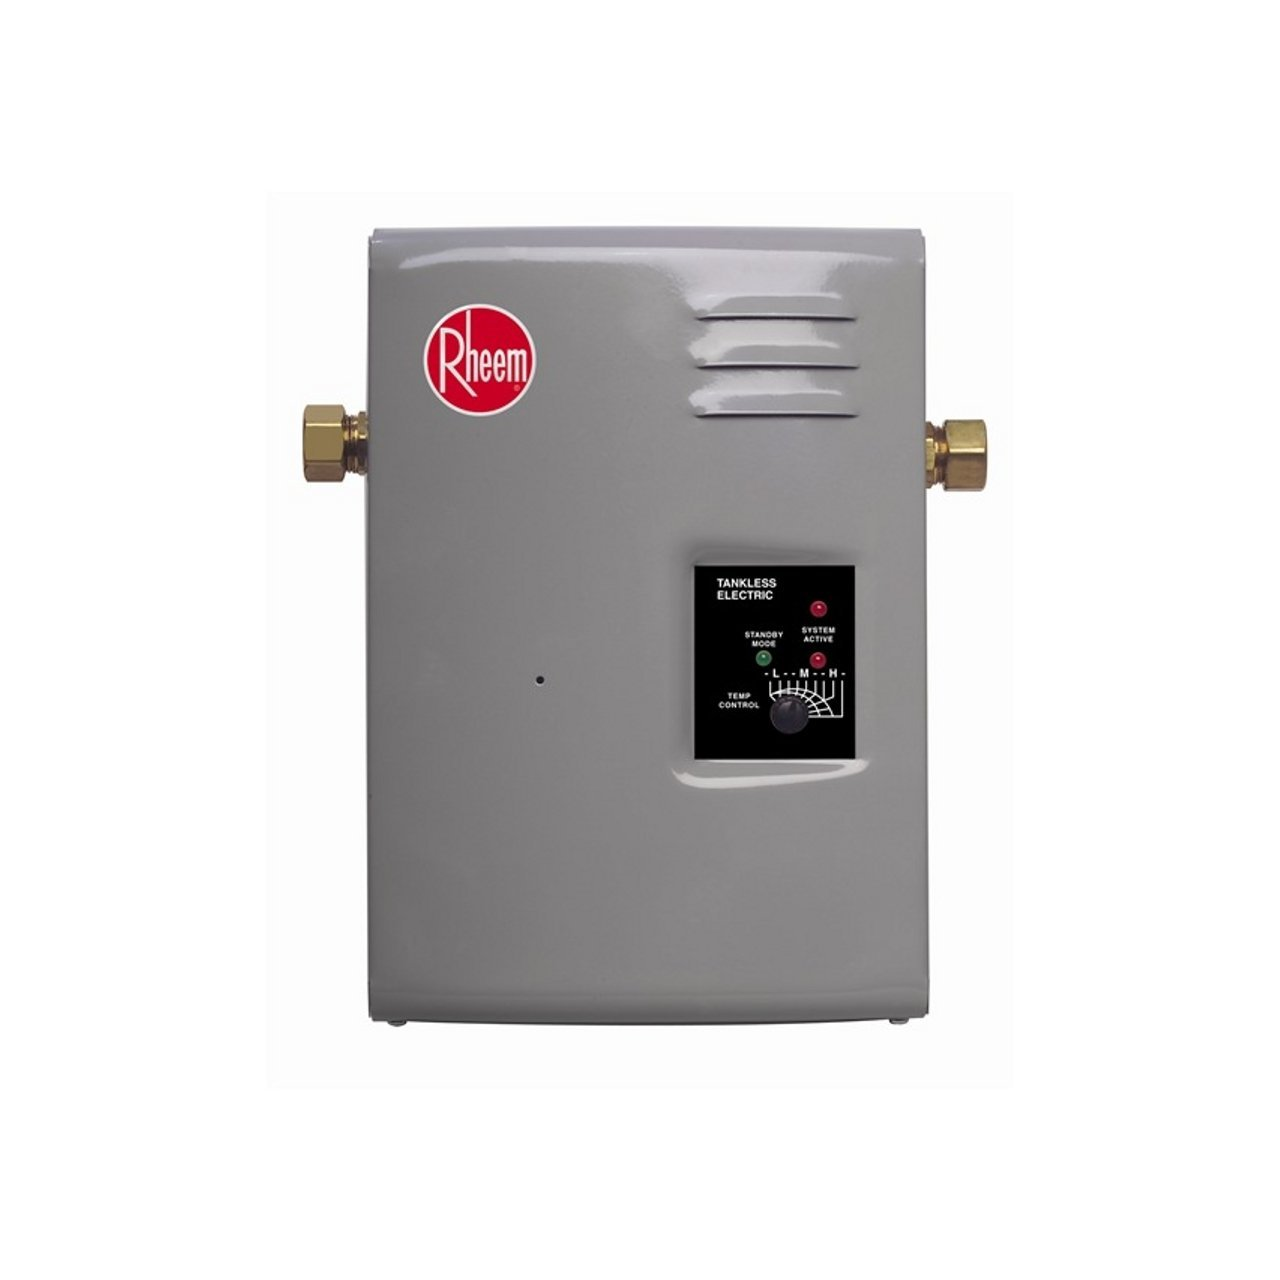 13 Best Tankless Water Heater Reviews (Updated 2017) Gas ...